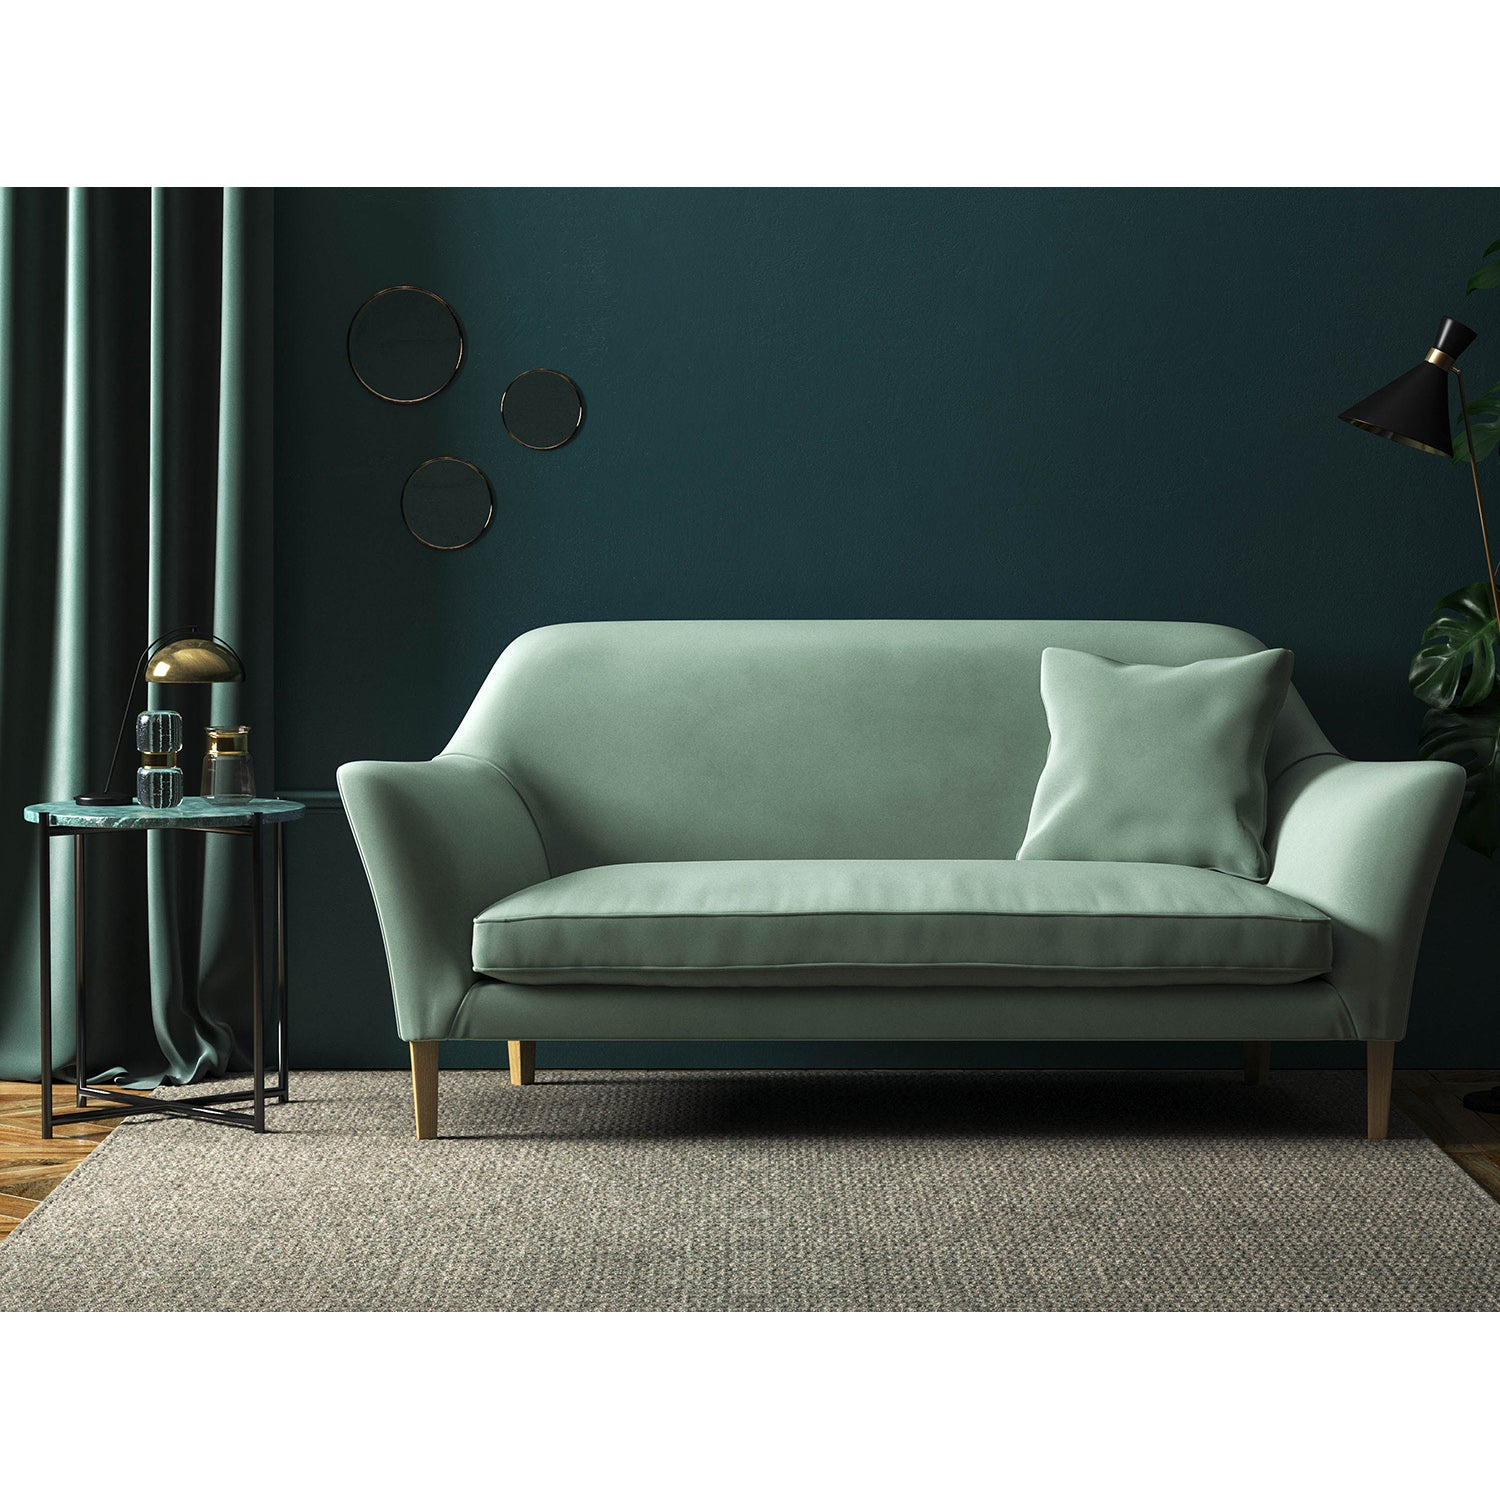 Sofa in a duck egg blue plain velvet upholstery fabric with a stain resistant finish